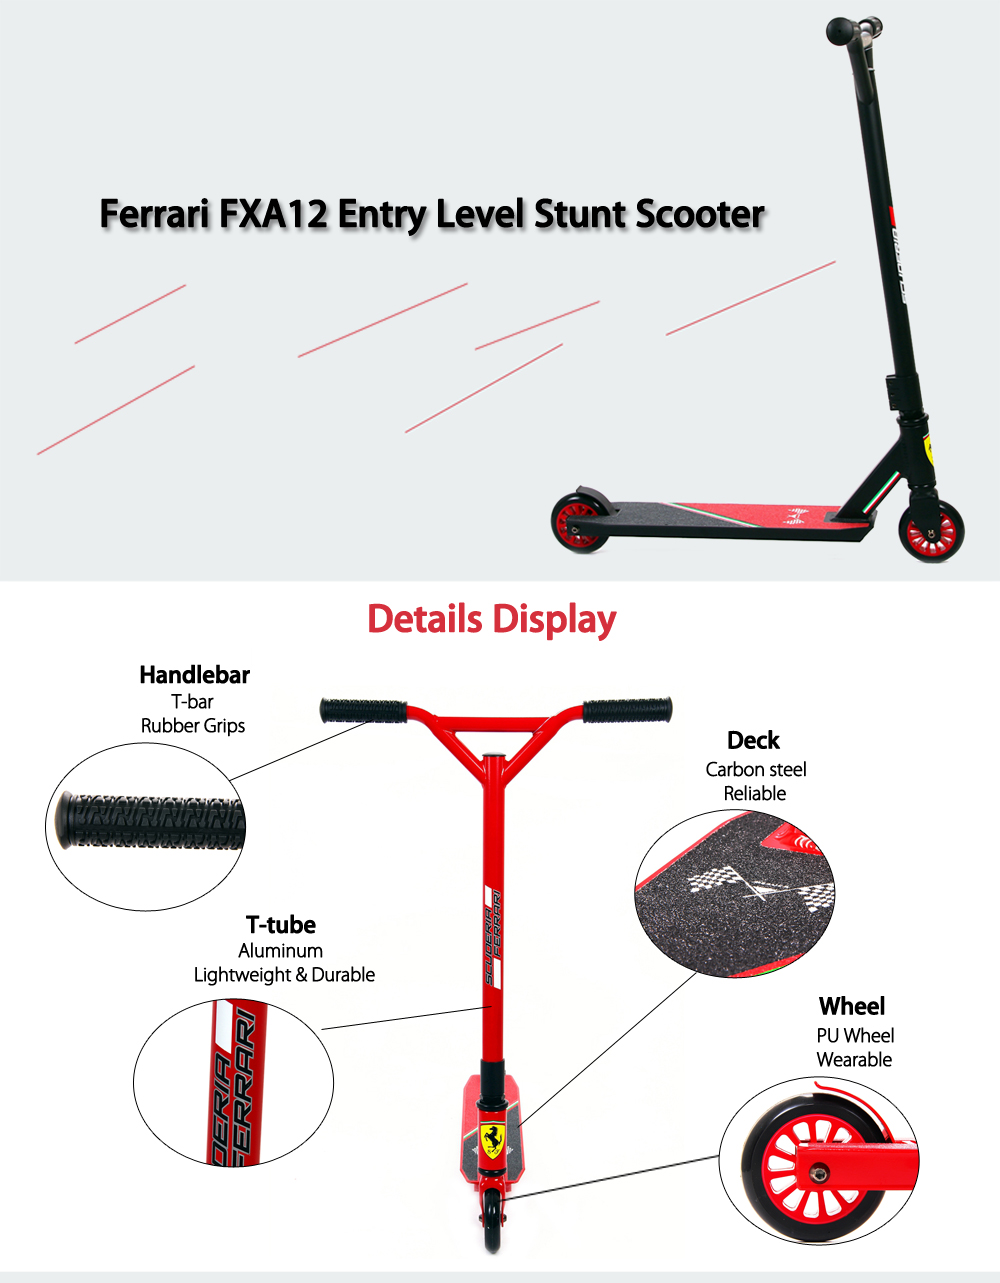 Ferrari FXA12 2-Wheel Entry Level Stunt Scooter